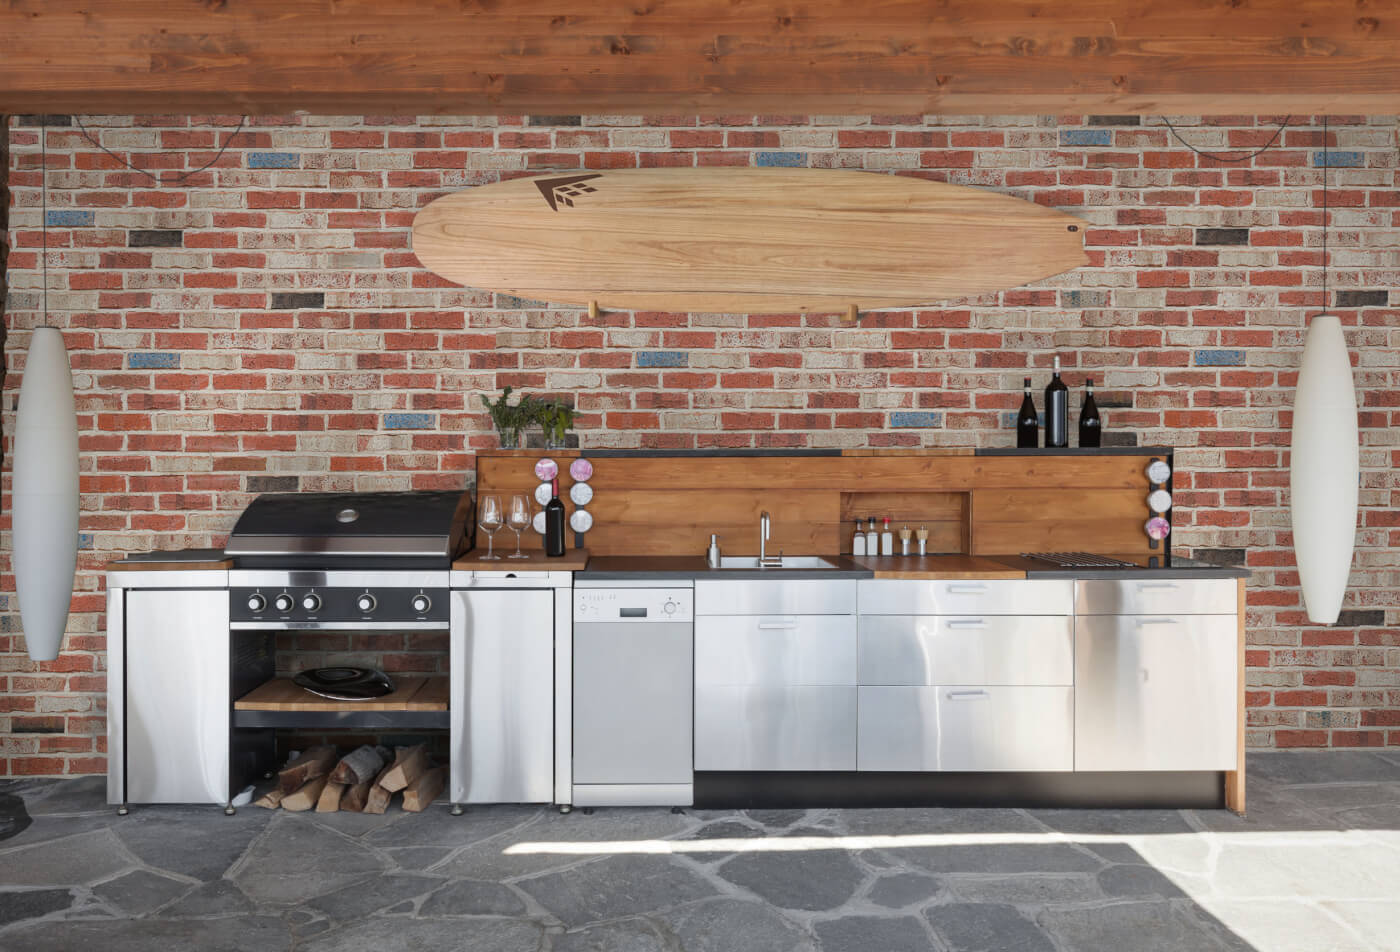 Maclaren recycled-style Brick wall in Outdoor Kitchen